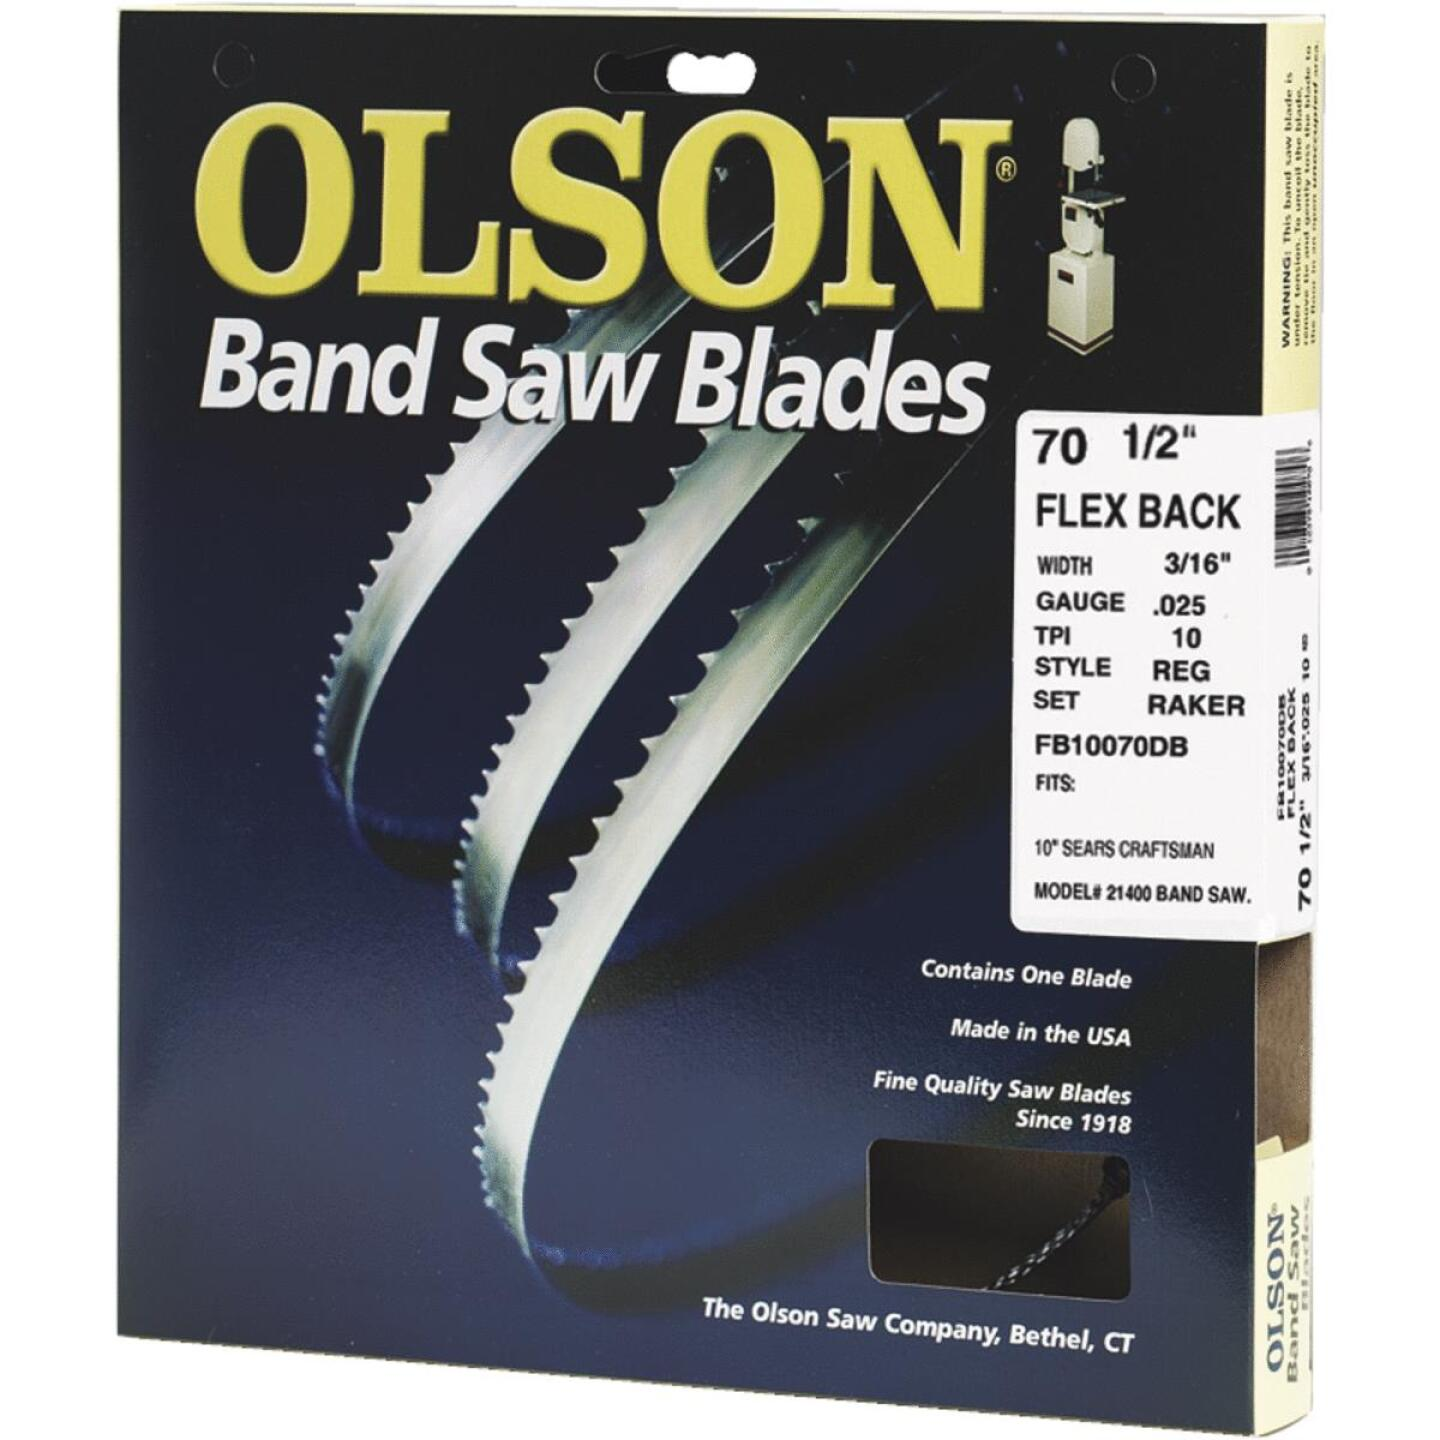 Olson 70-1/2 In. x 3/16 In. 10 TPI Regular Flex Back Band Saw Blade Image 1